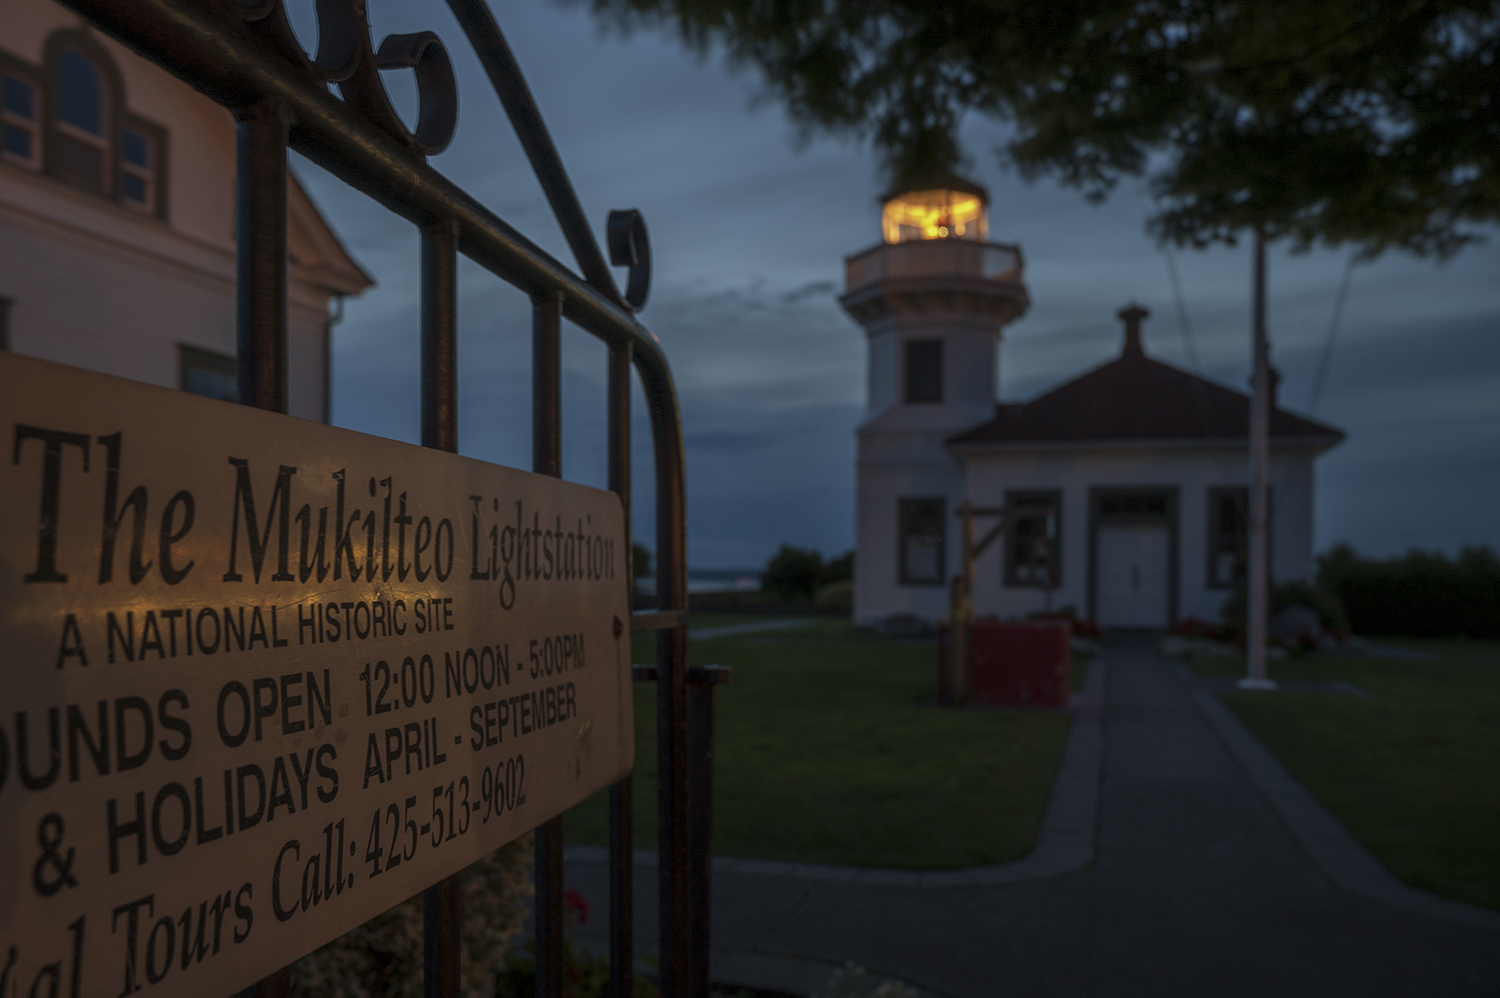 Opened in 1906, the Mukilteo Light Station featured a unique design, built of wood rather than brick and concrete, and created an aesthetic other lighthouses in the Pacific Northwest would soon adopt. (Image: Rachael Jones / Seattle Refined)